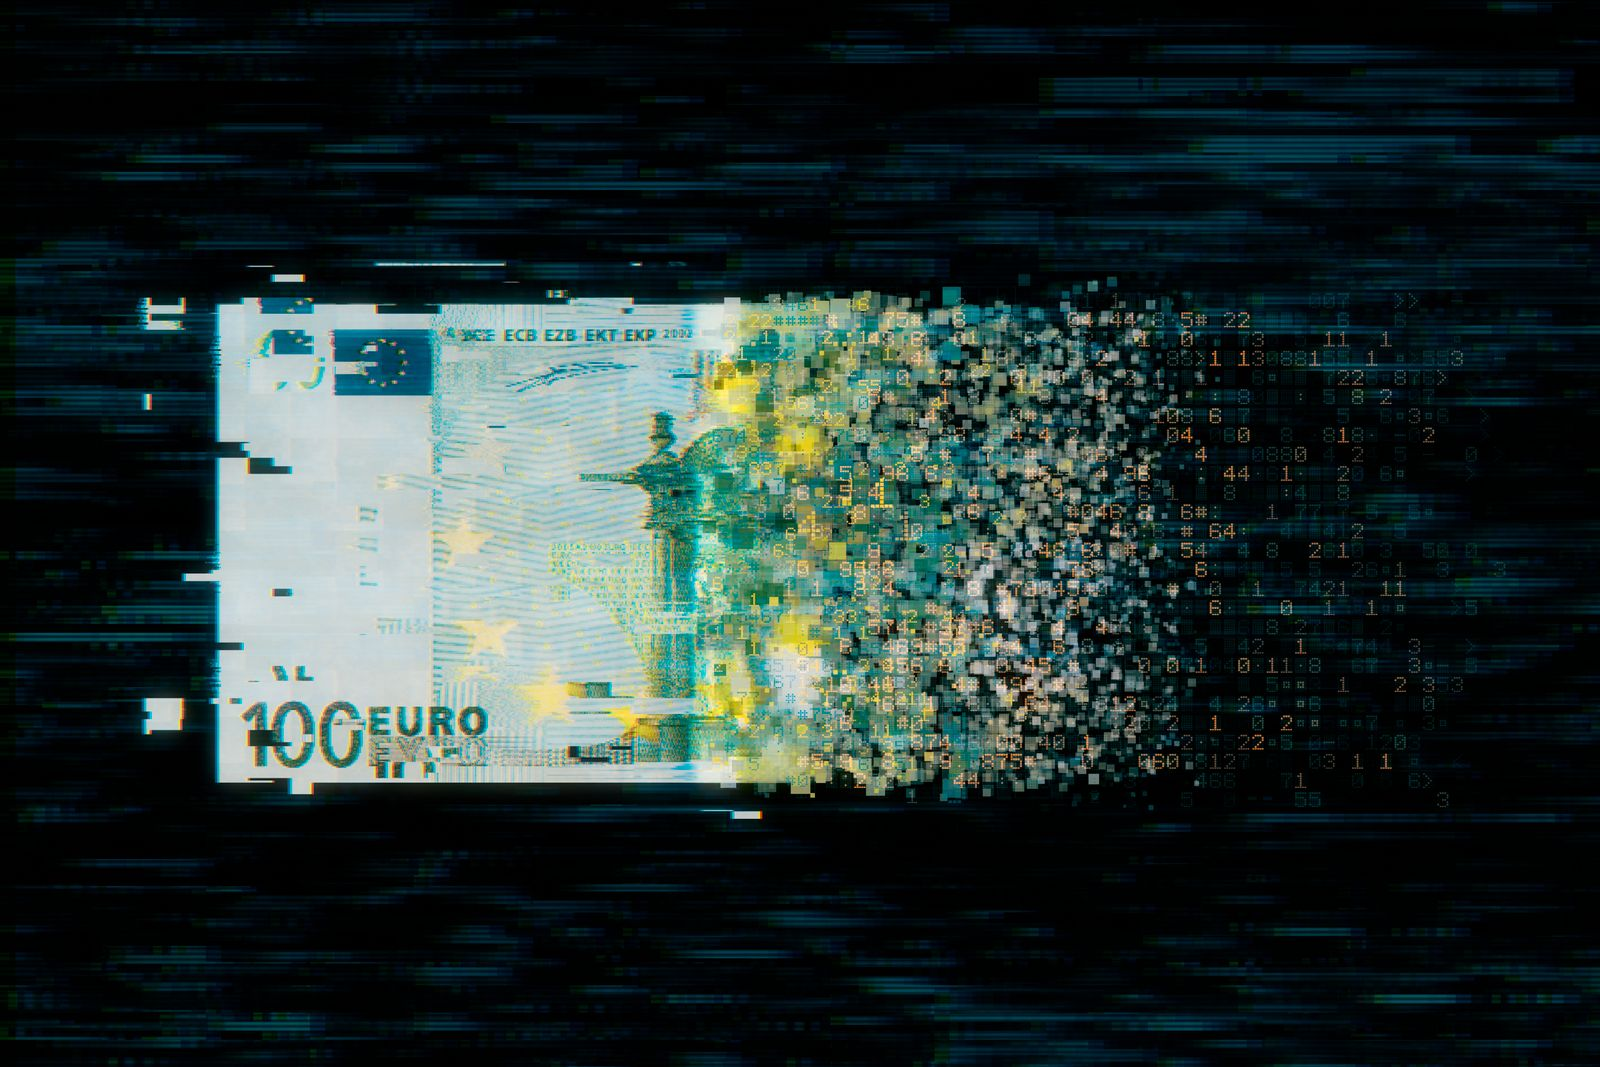 Pixelated european union currency on dark background